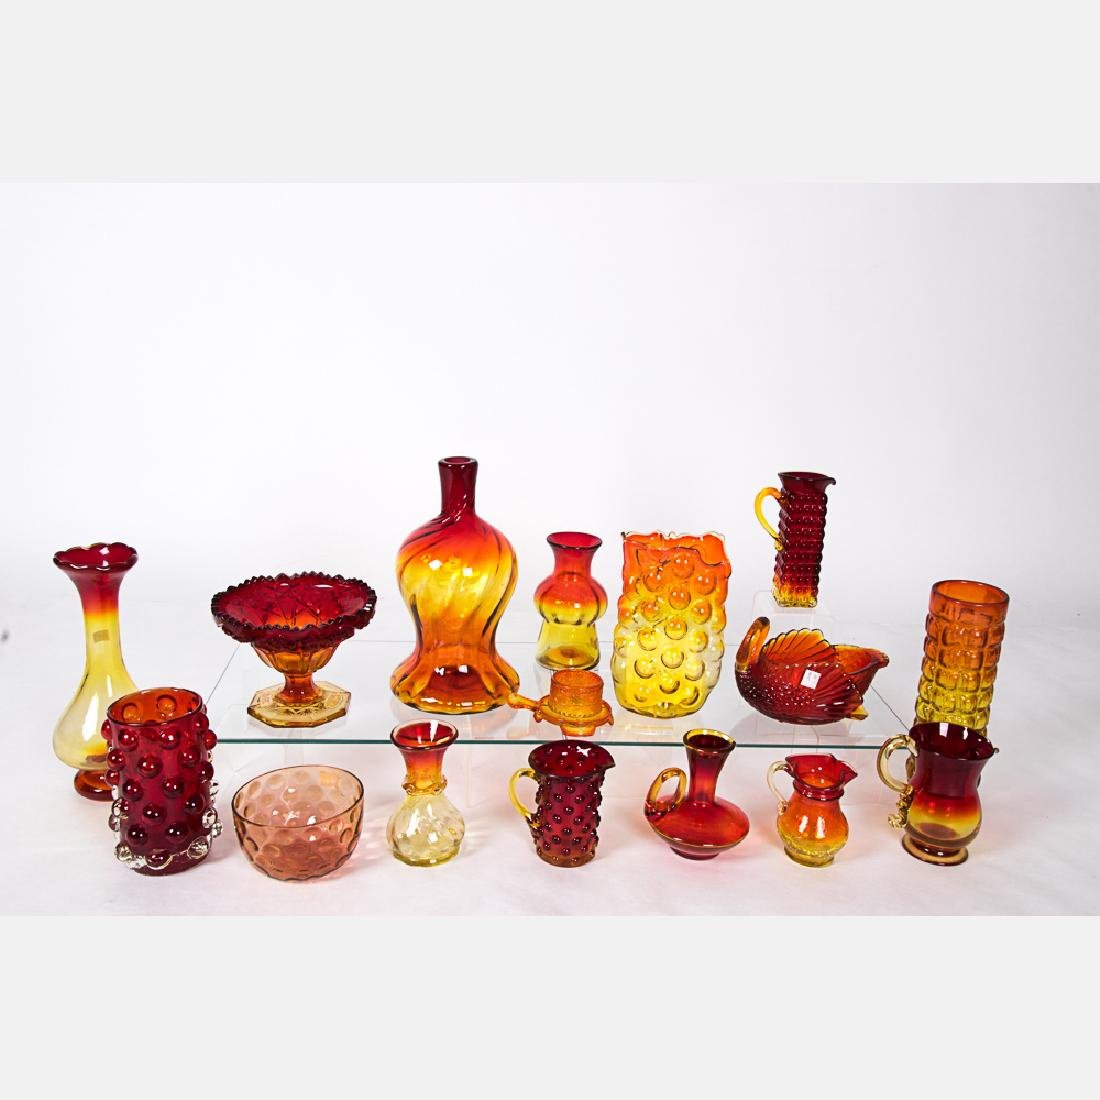 A Collection of Amberina and Cranberry Glass Decorative